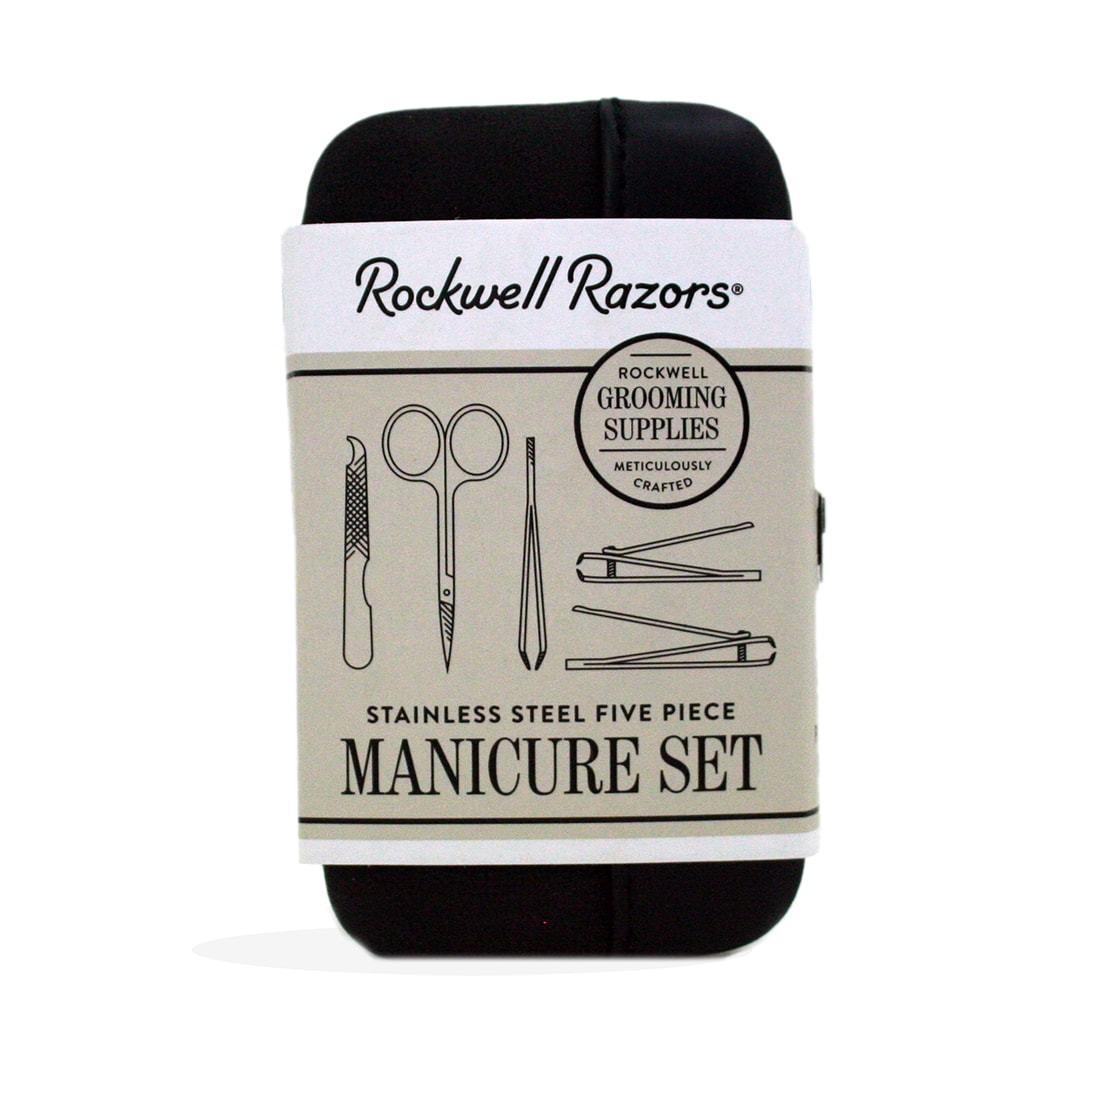 Keep your claws at a minimum with this Rockwell Manicure set.